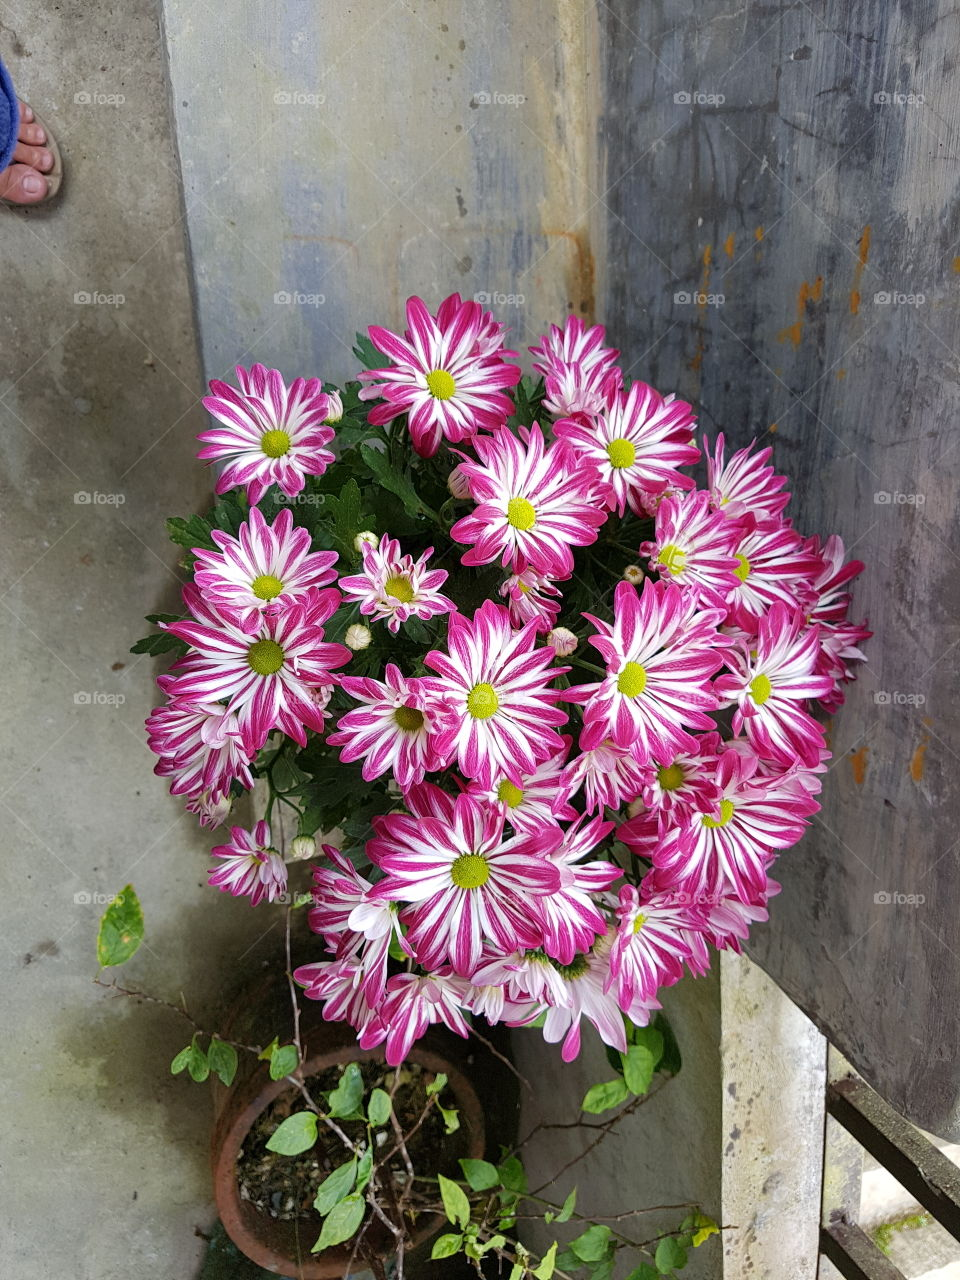 Floral in time. It is a beautiful day seeing flowers such as this. Brightens s